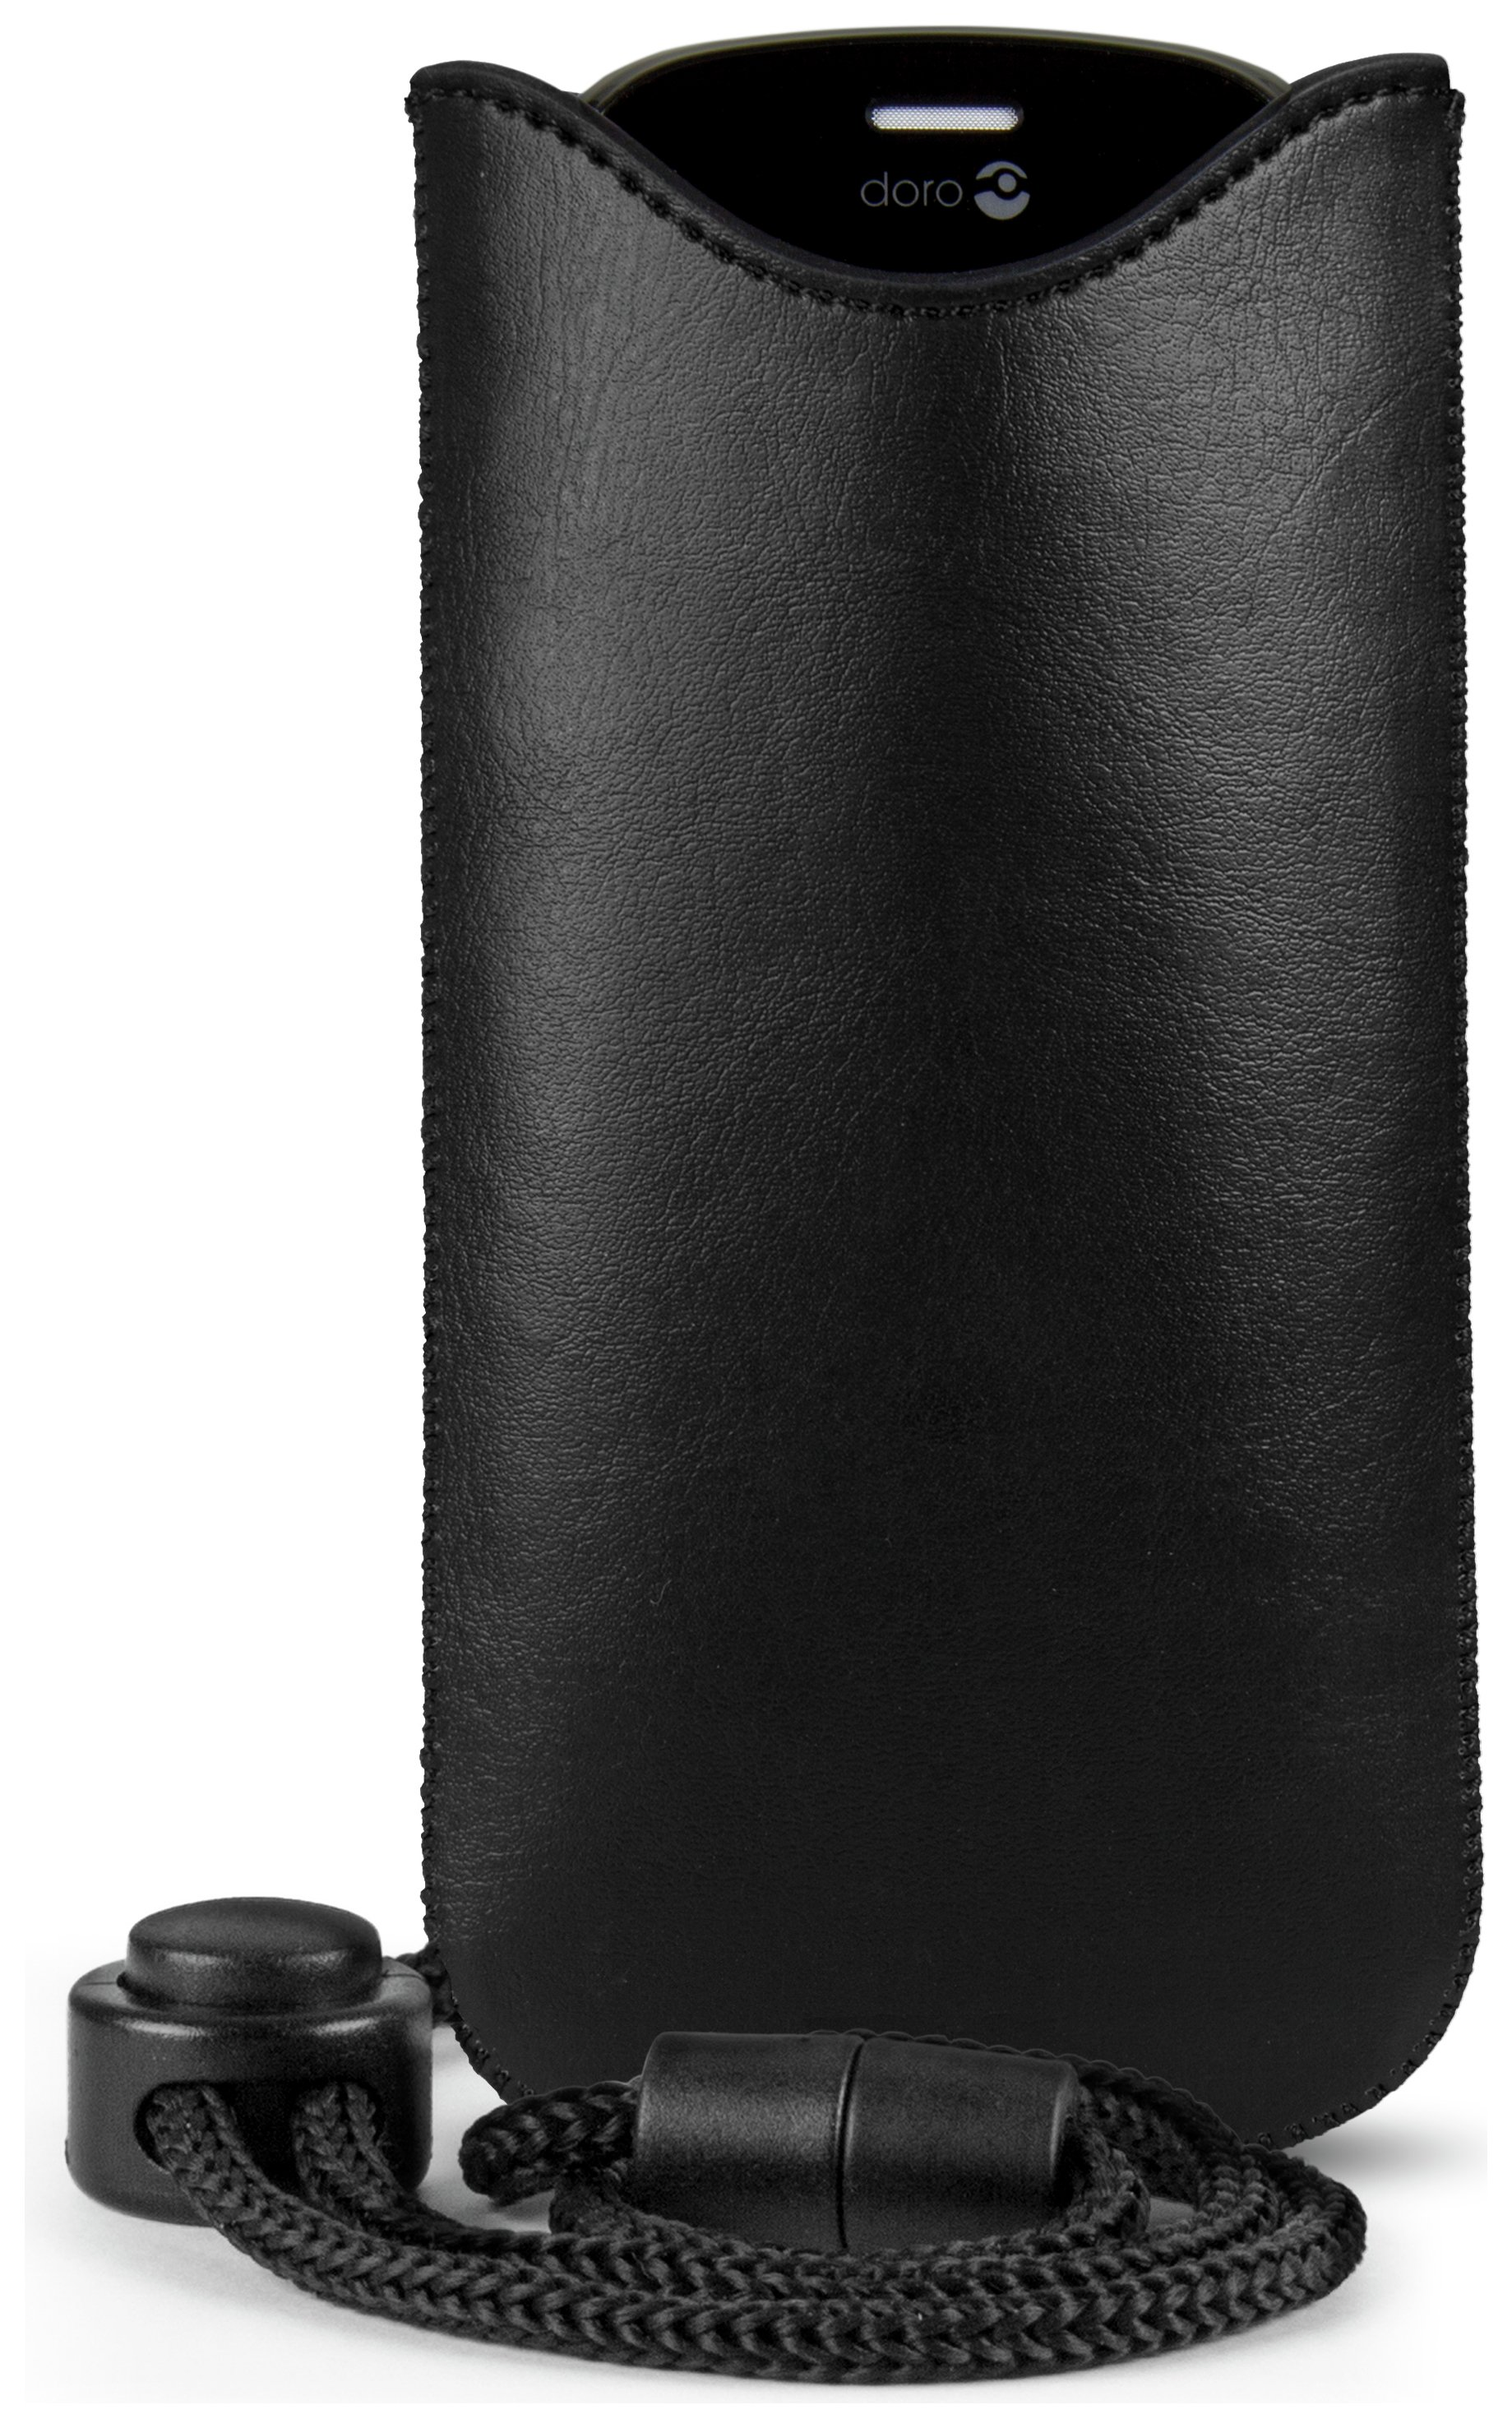 Doro - Medium Mobile Phone - Pouch - Black